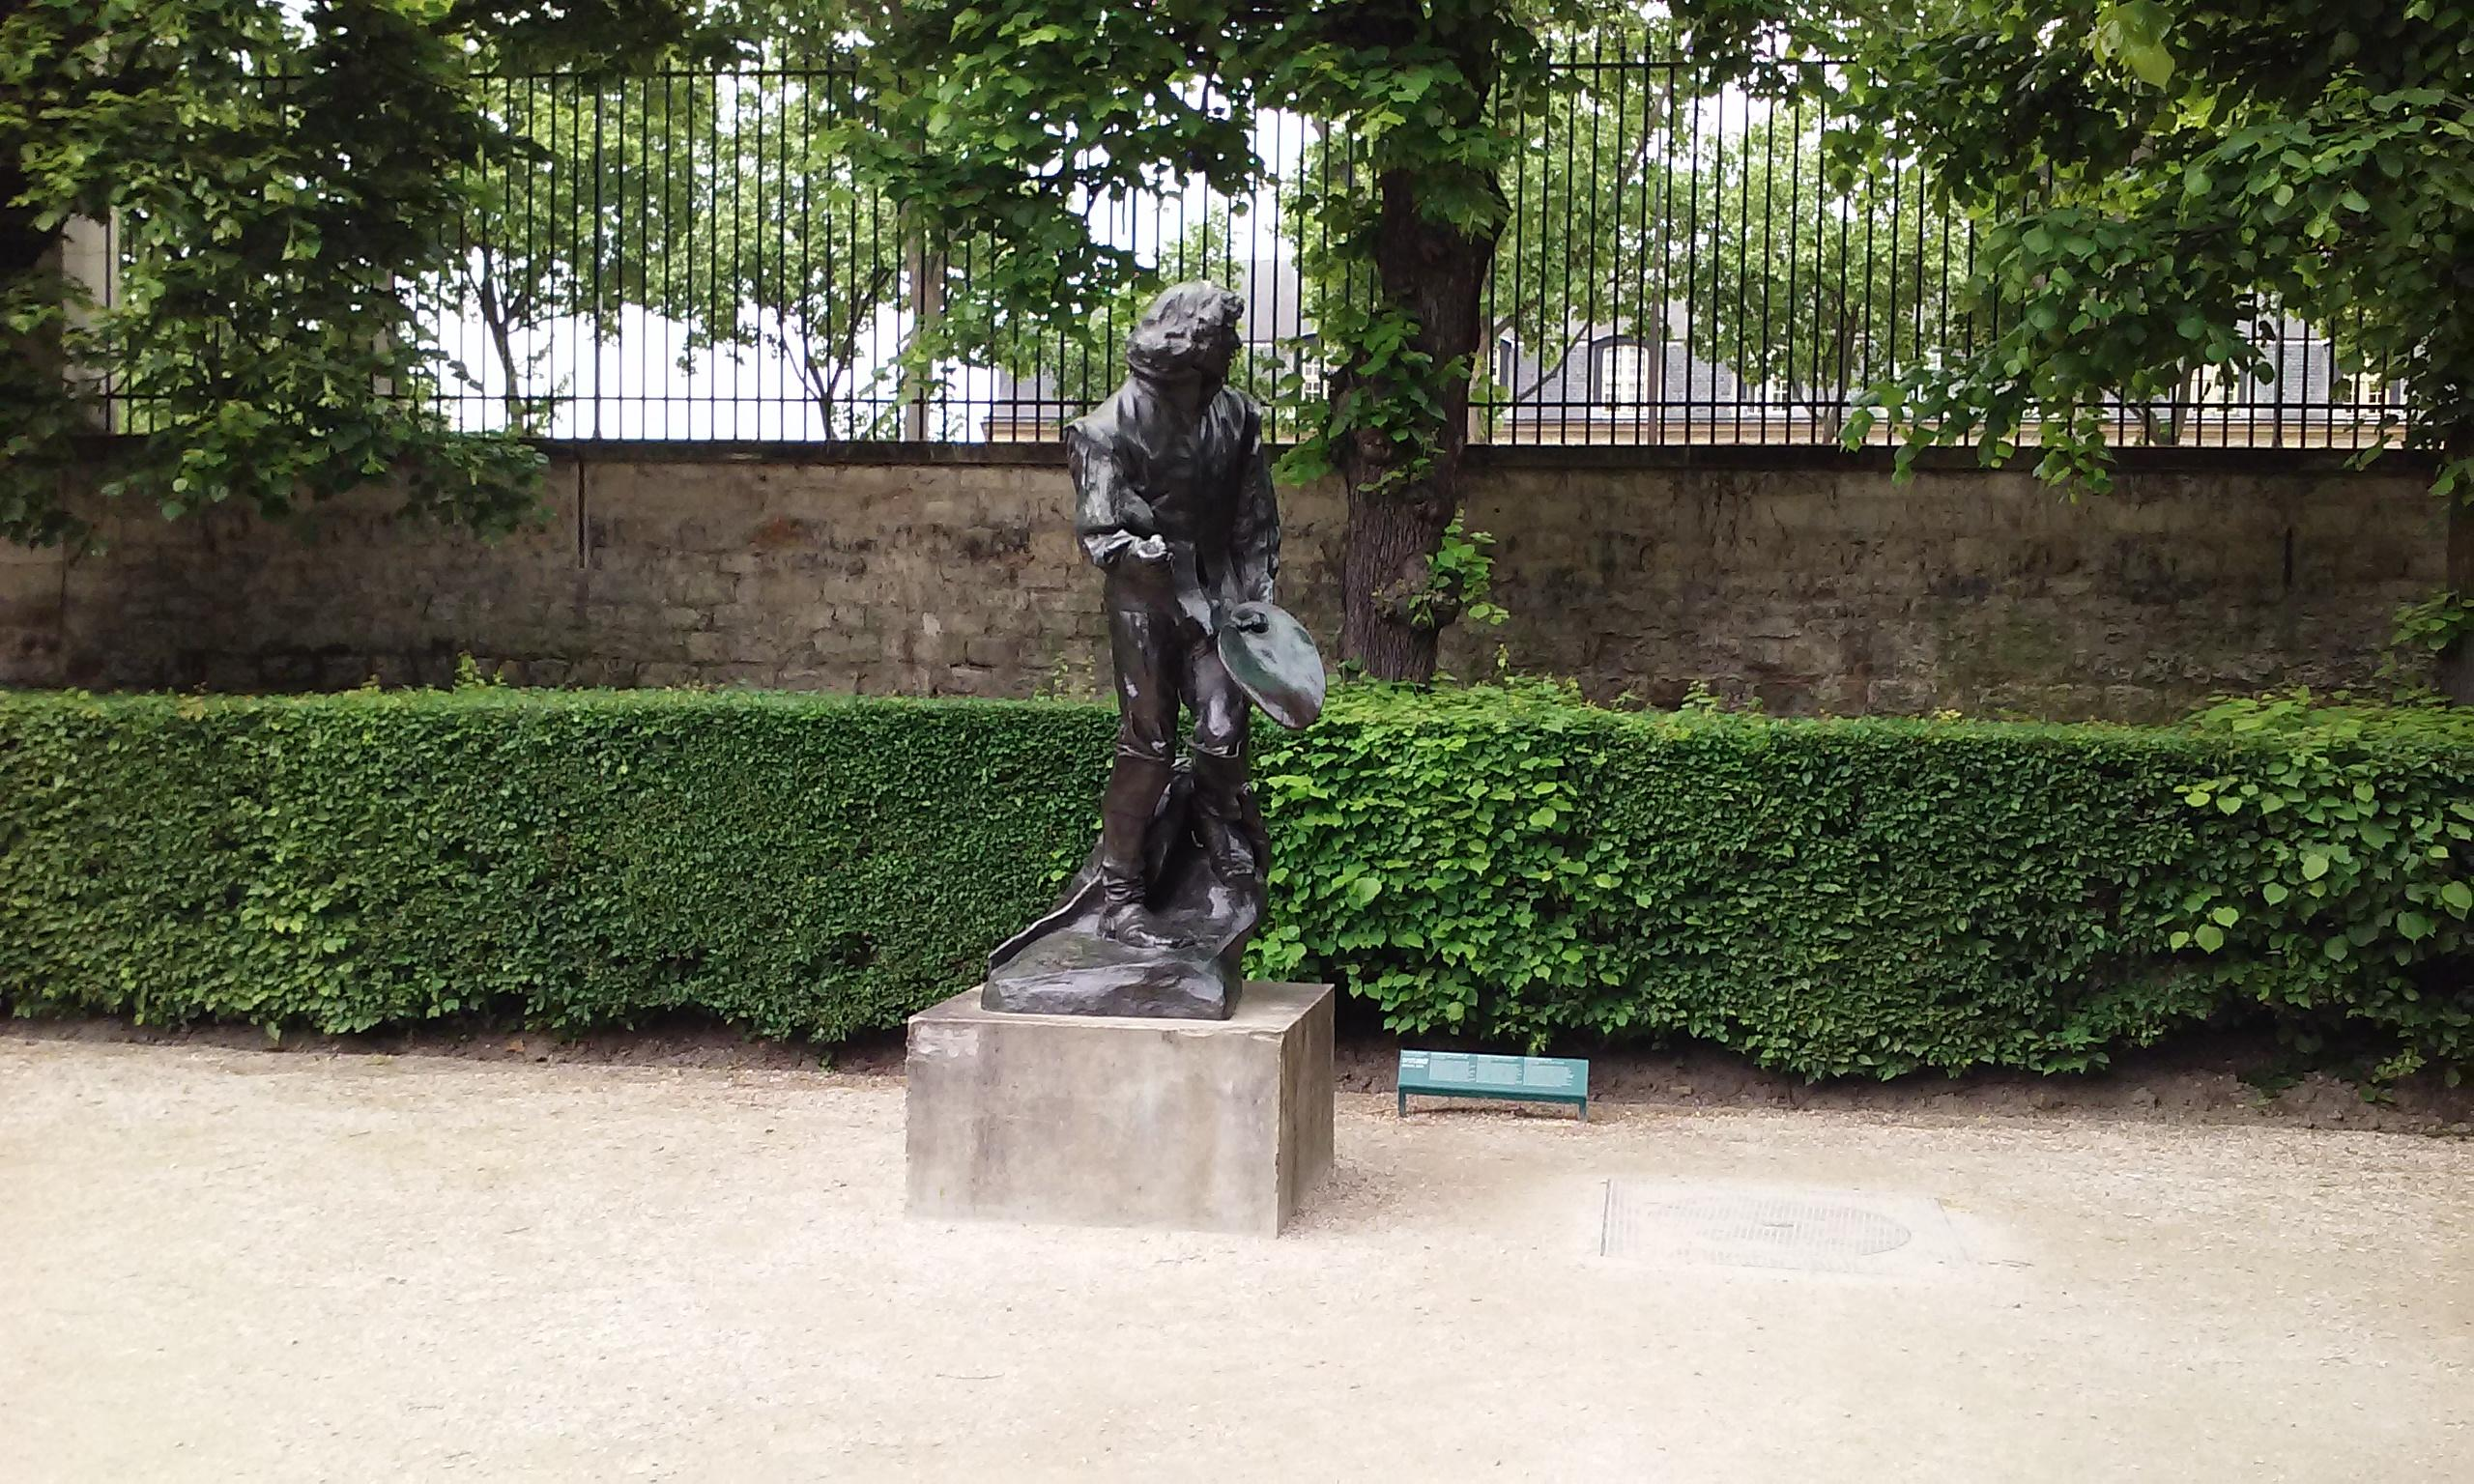 Rodin Museum with multiple outdoor sculptures